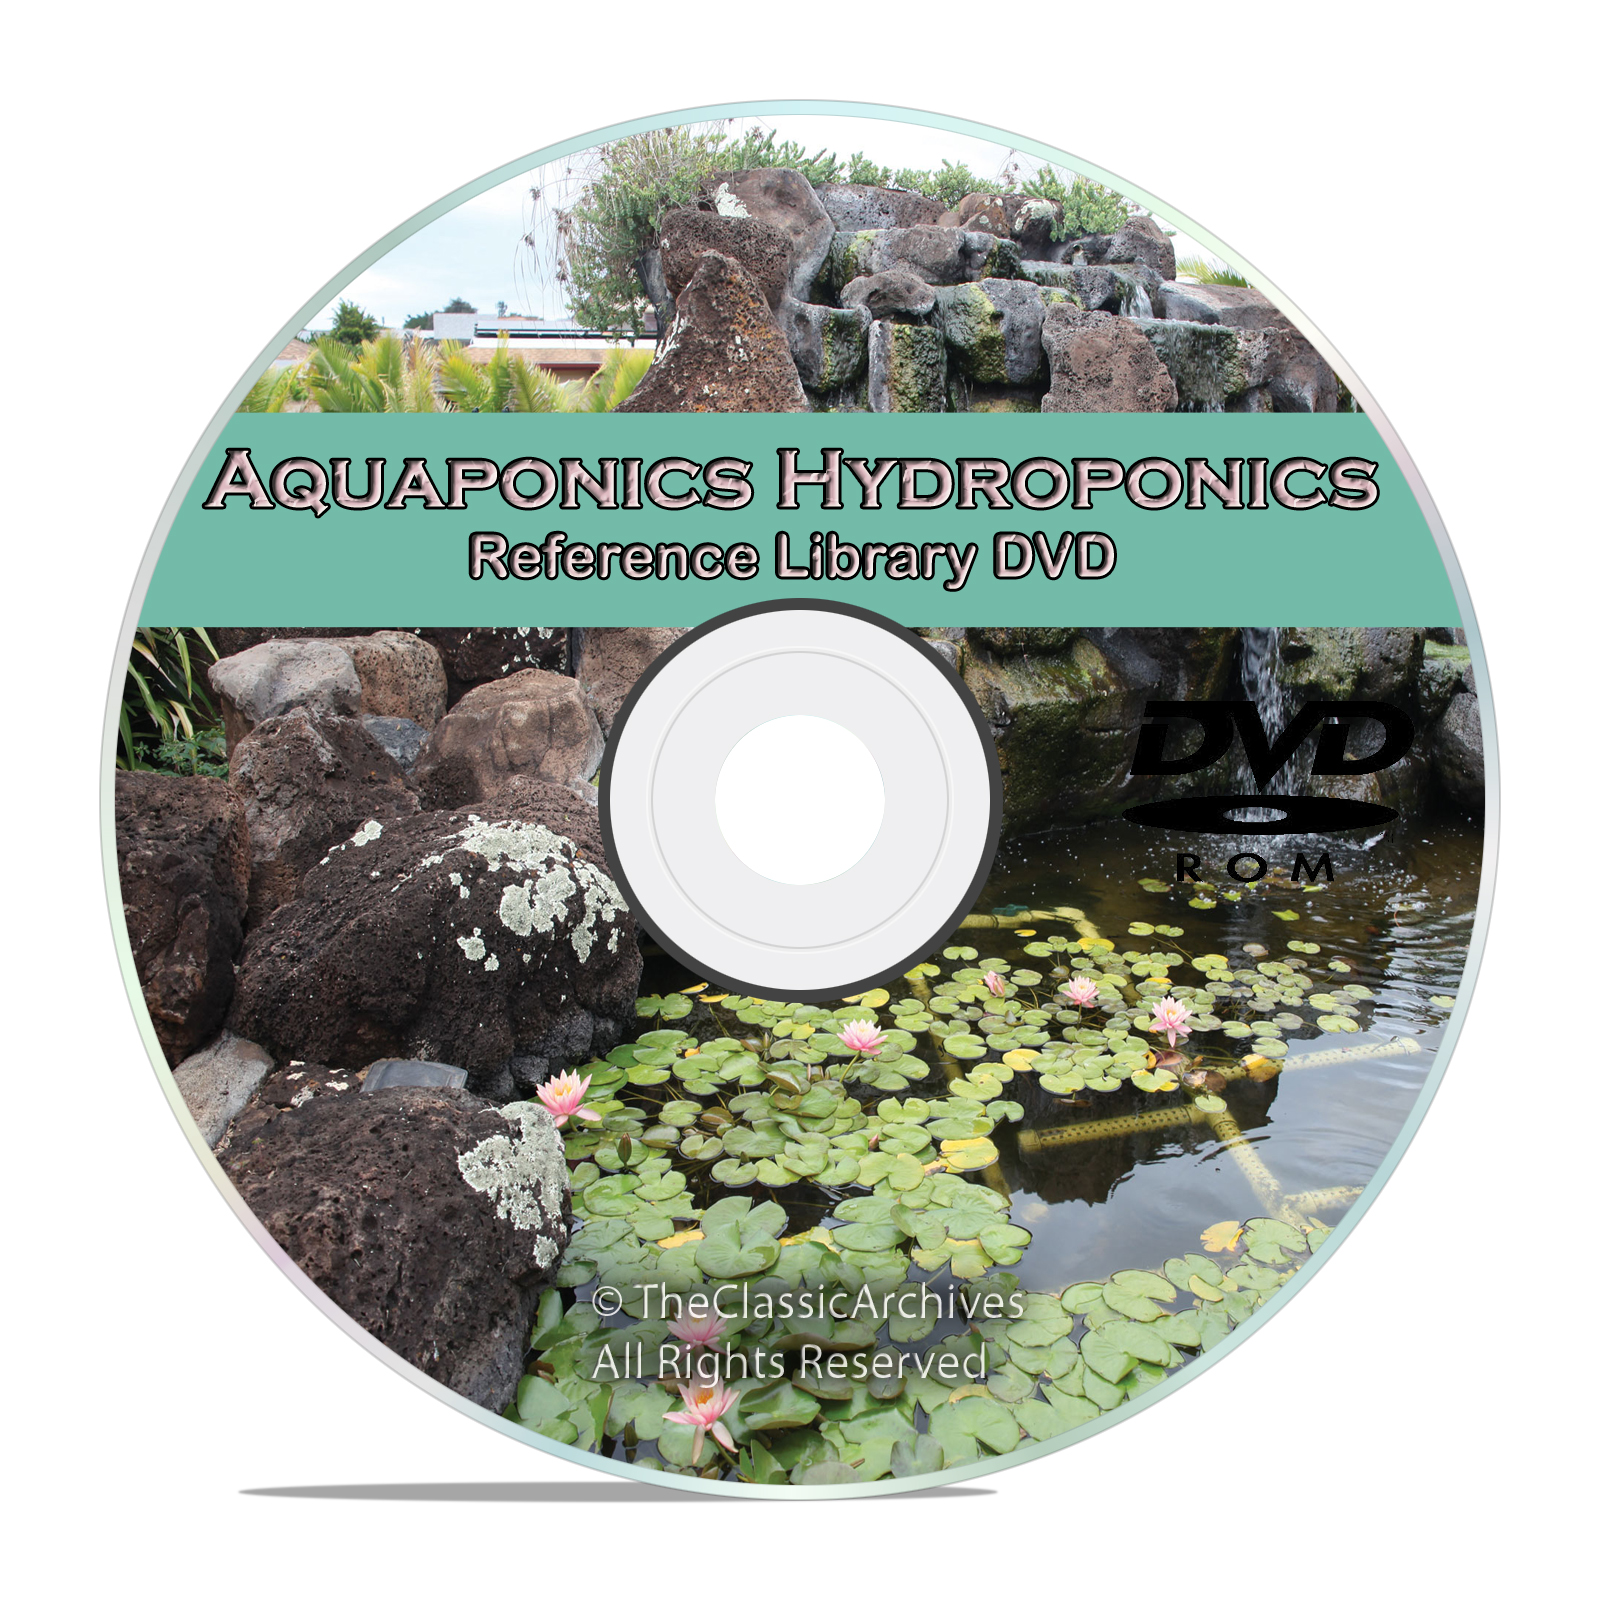 Learn about Soilless Gardening, Hydroponics, Aquaponics, Aquaculture on DVD